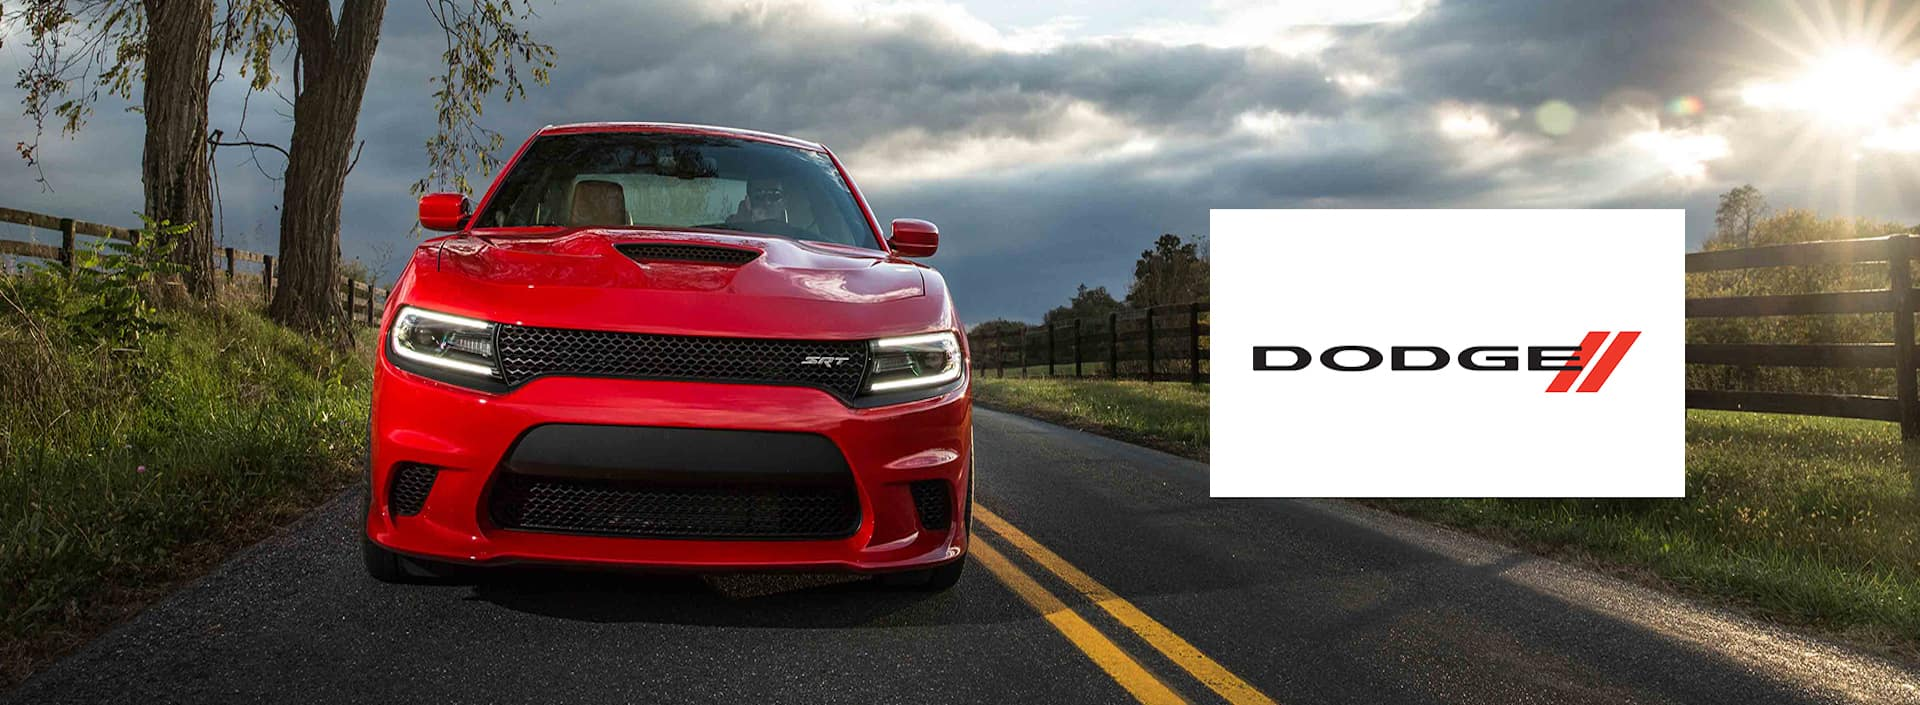 Dodge desktop banner